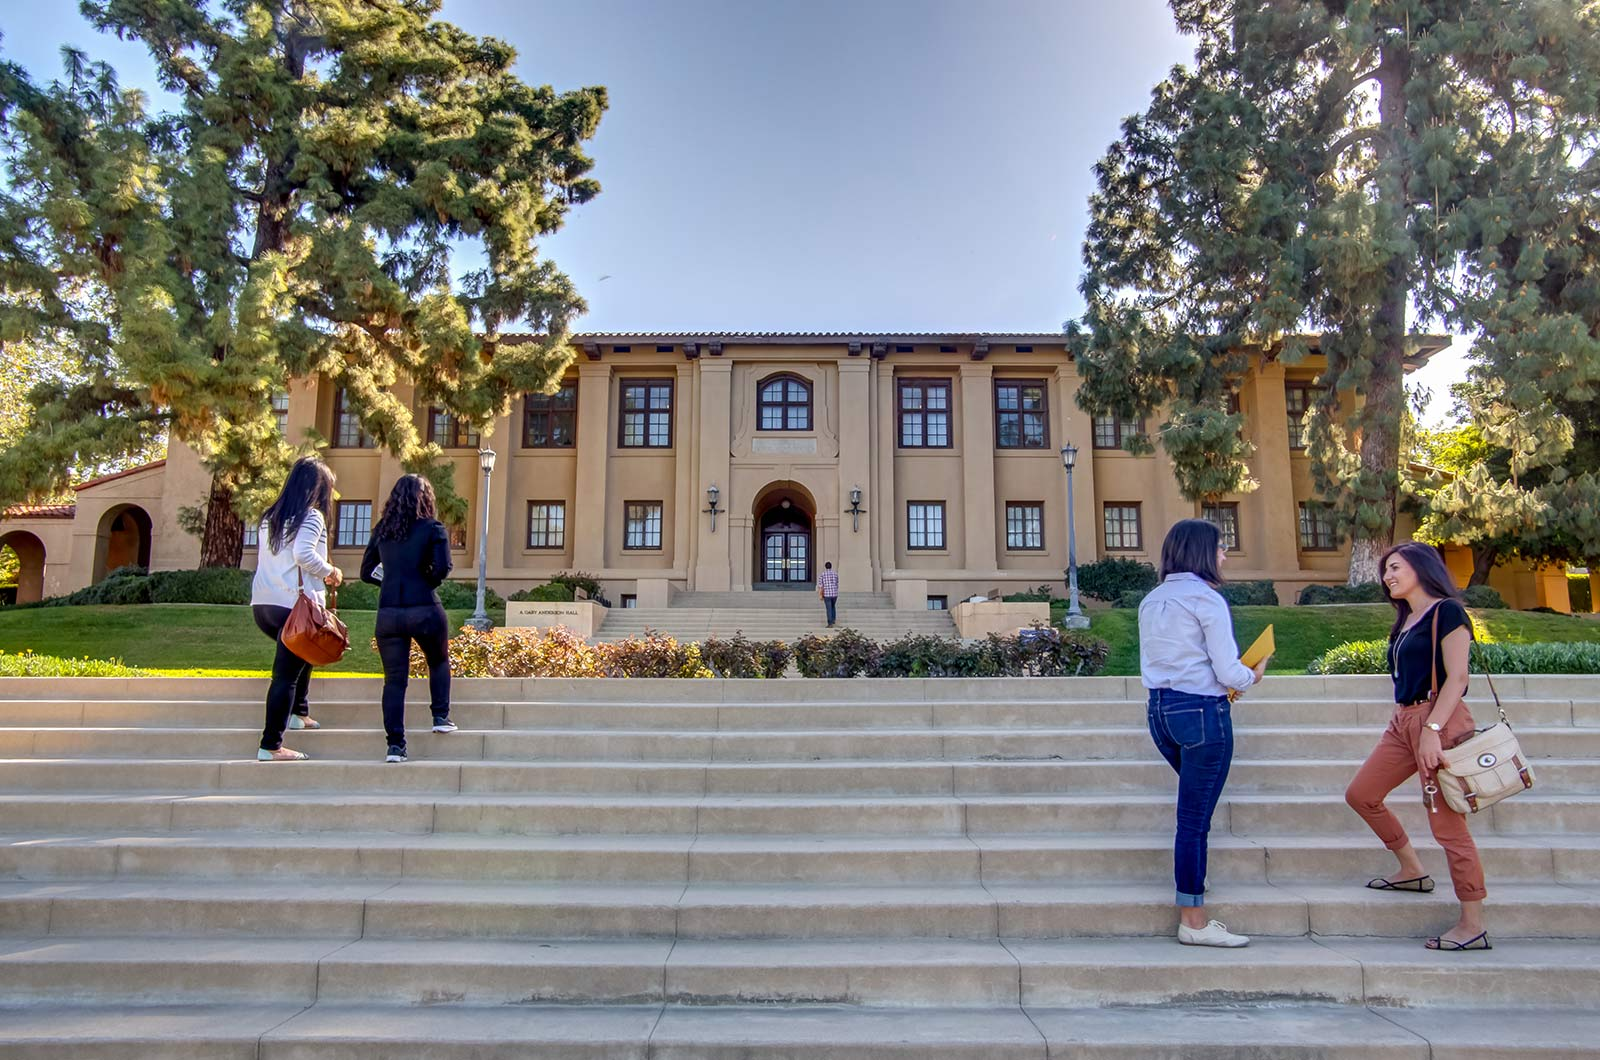 Front-of-Library-At-College-University-360-Tours-Virtual-Tour-Company-College-Vitual-Tours-Virtual-Tours-For-College